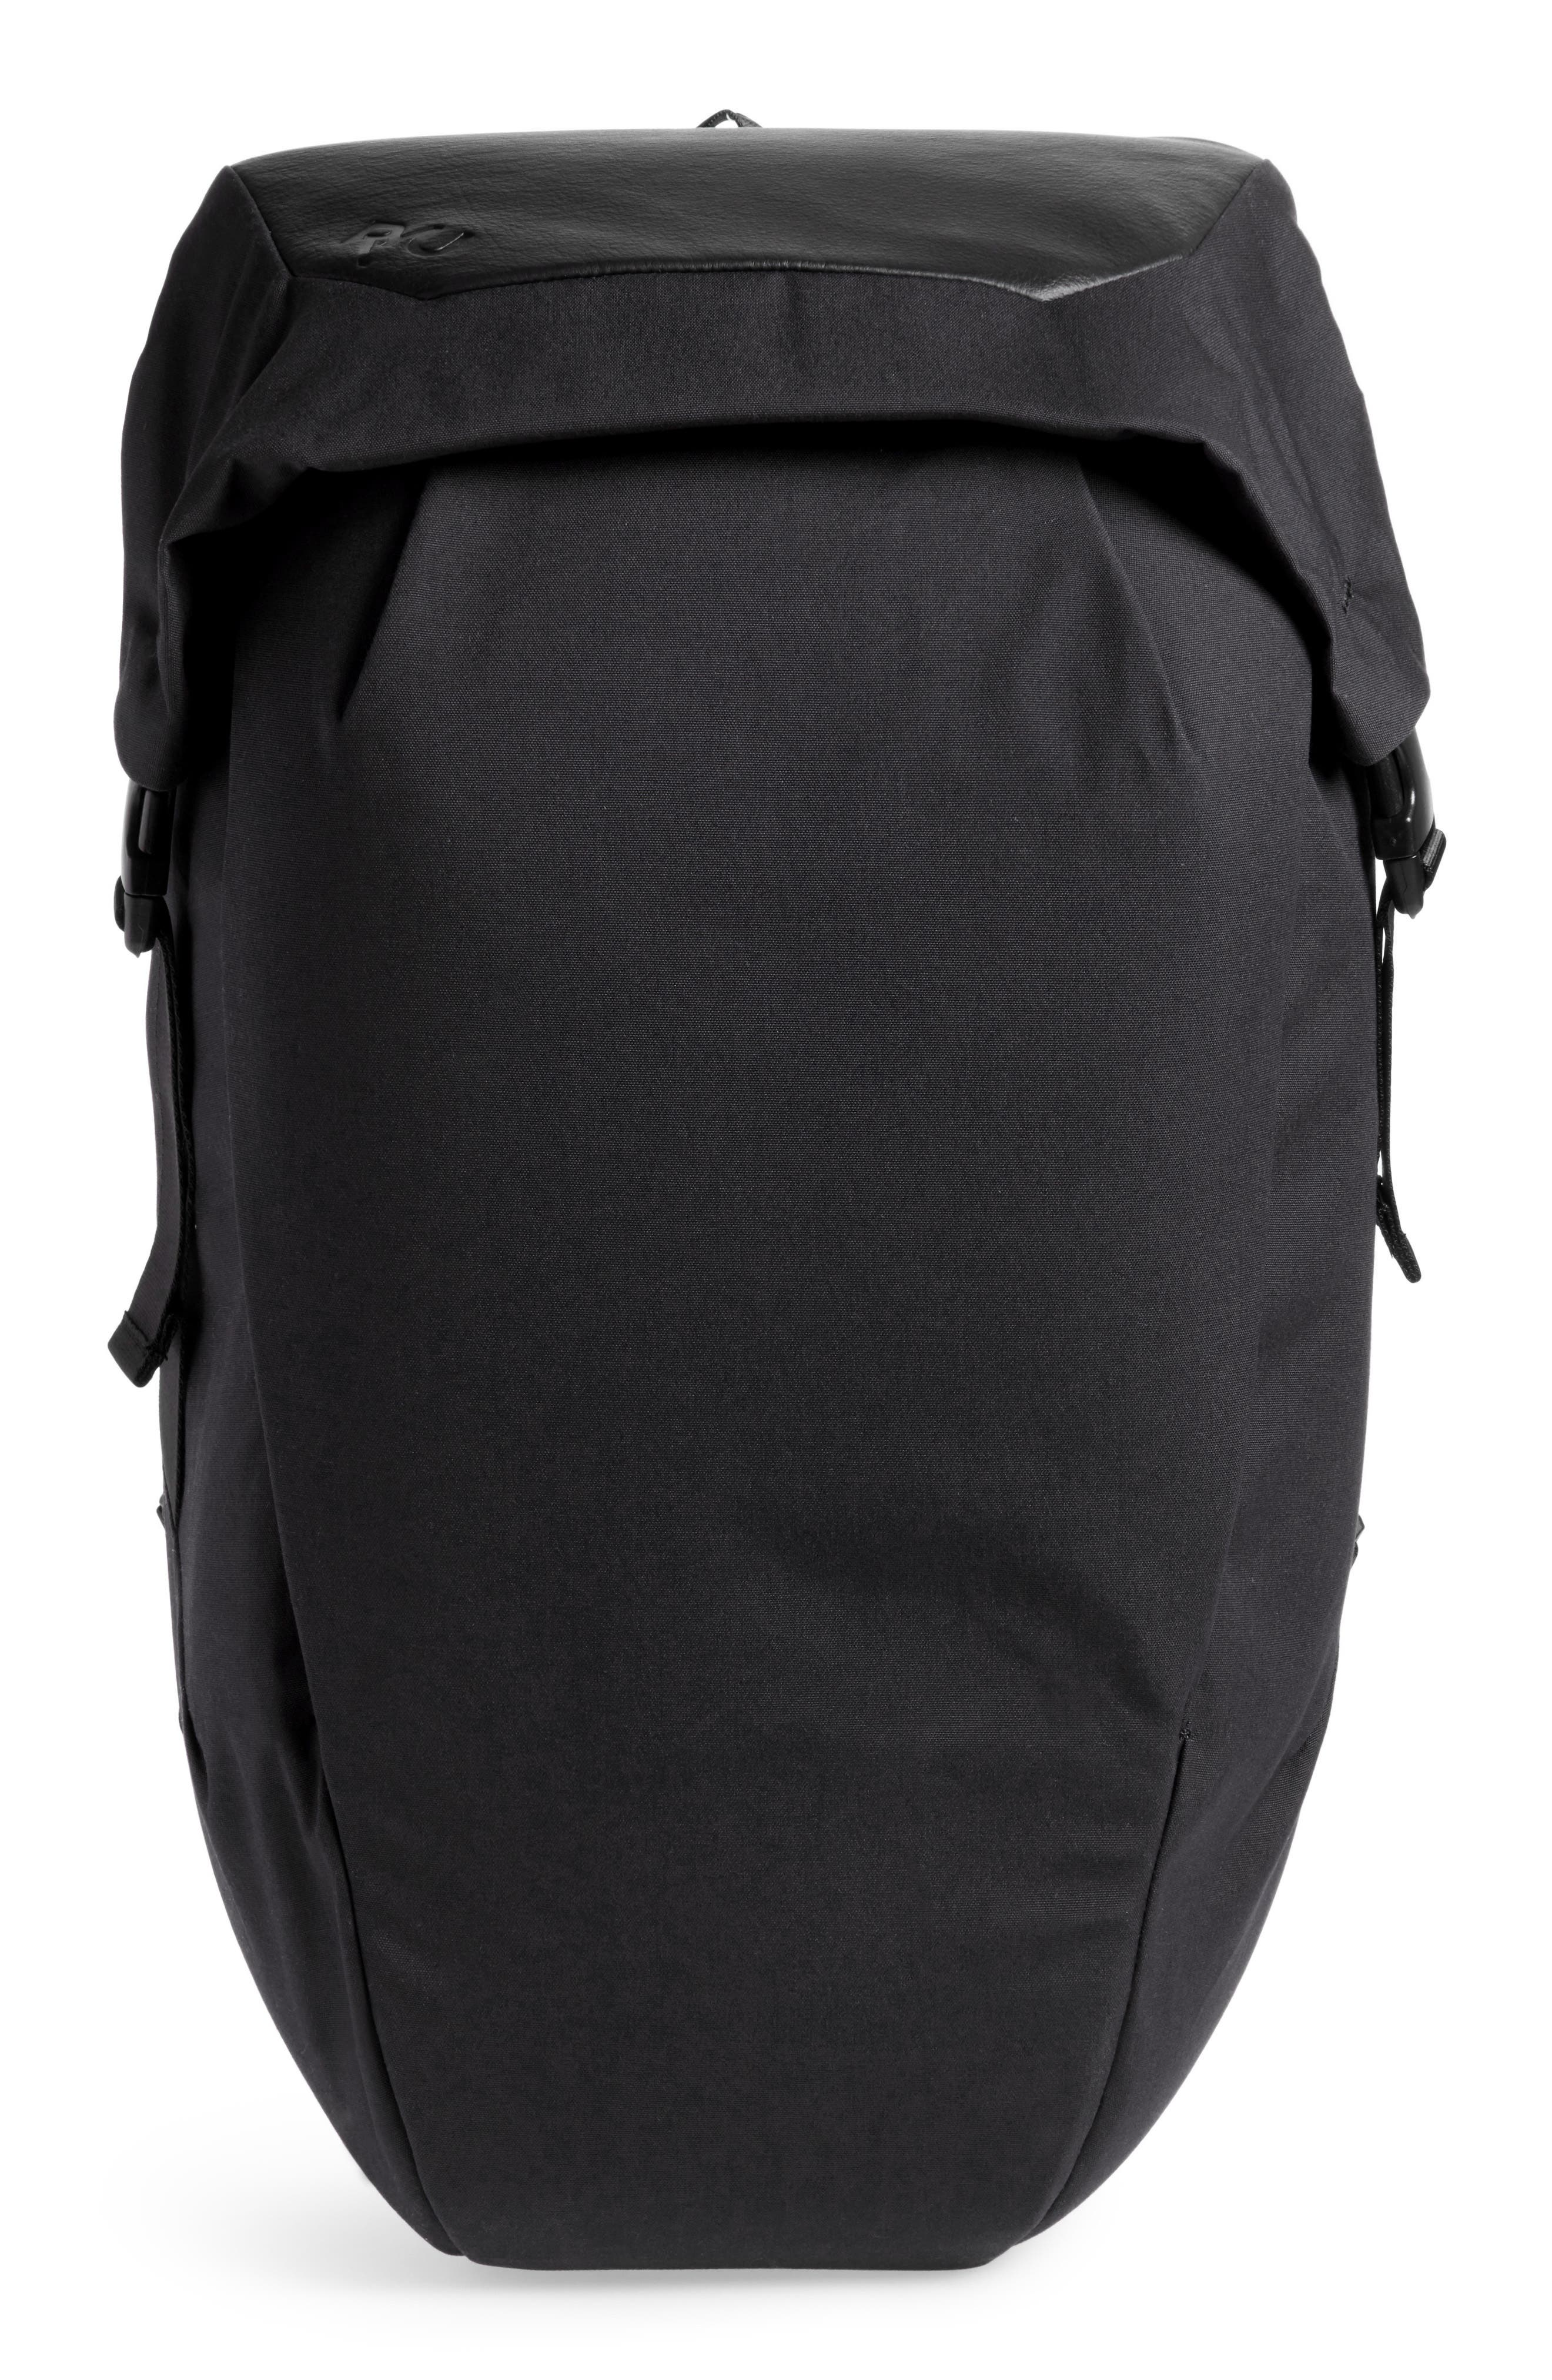 Locker Pack Lux Backpack,                             Main thumbnail 1, color,                             001